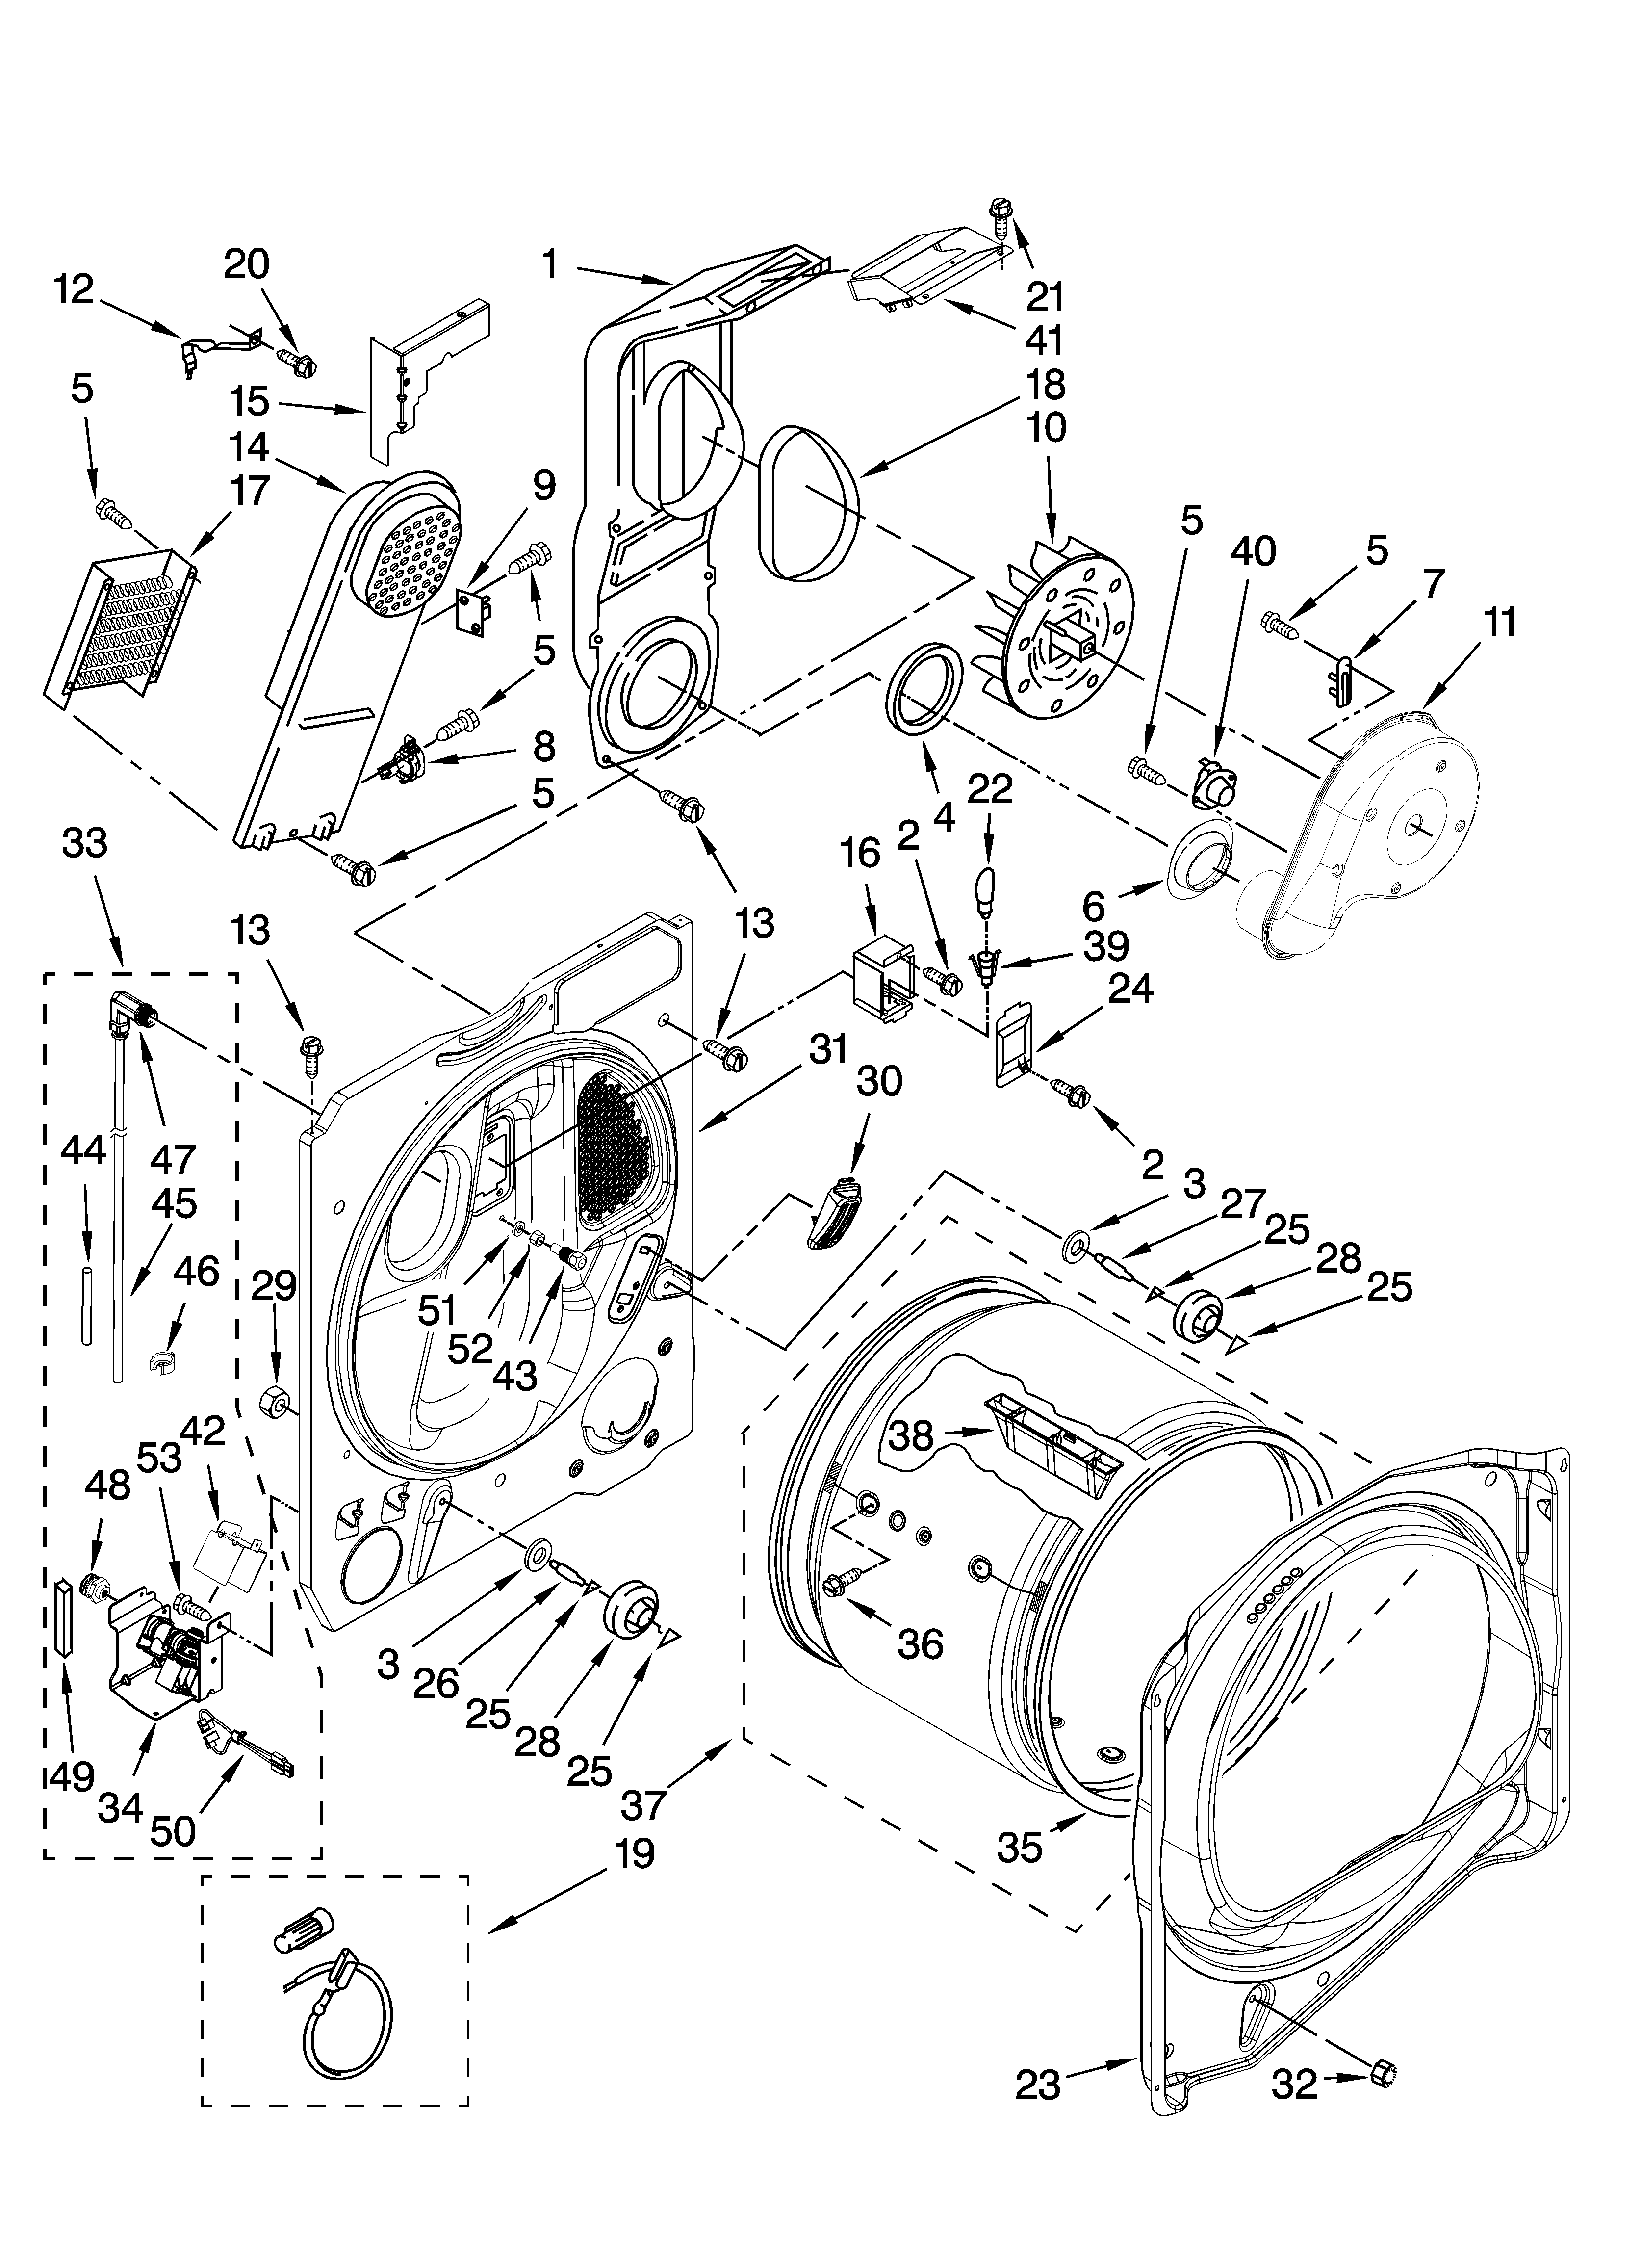 Whirlpool Duet Dryer Wiring Diagram from static-resources.imageservice.cloud